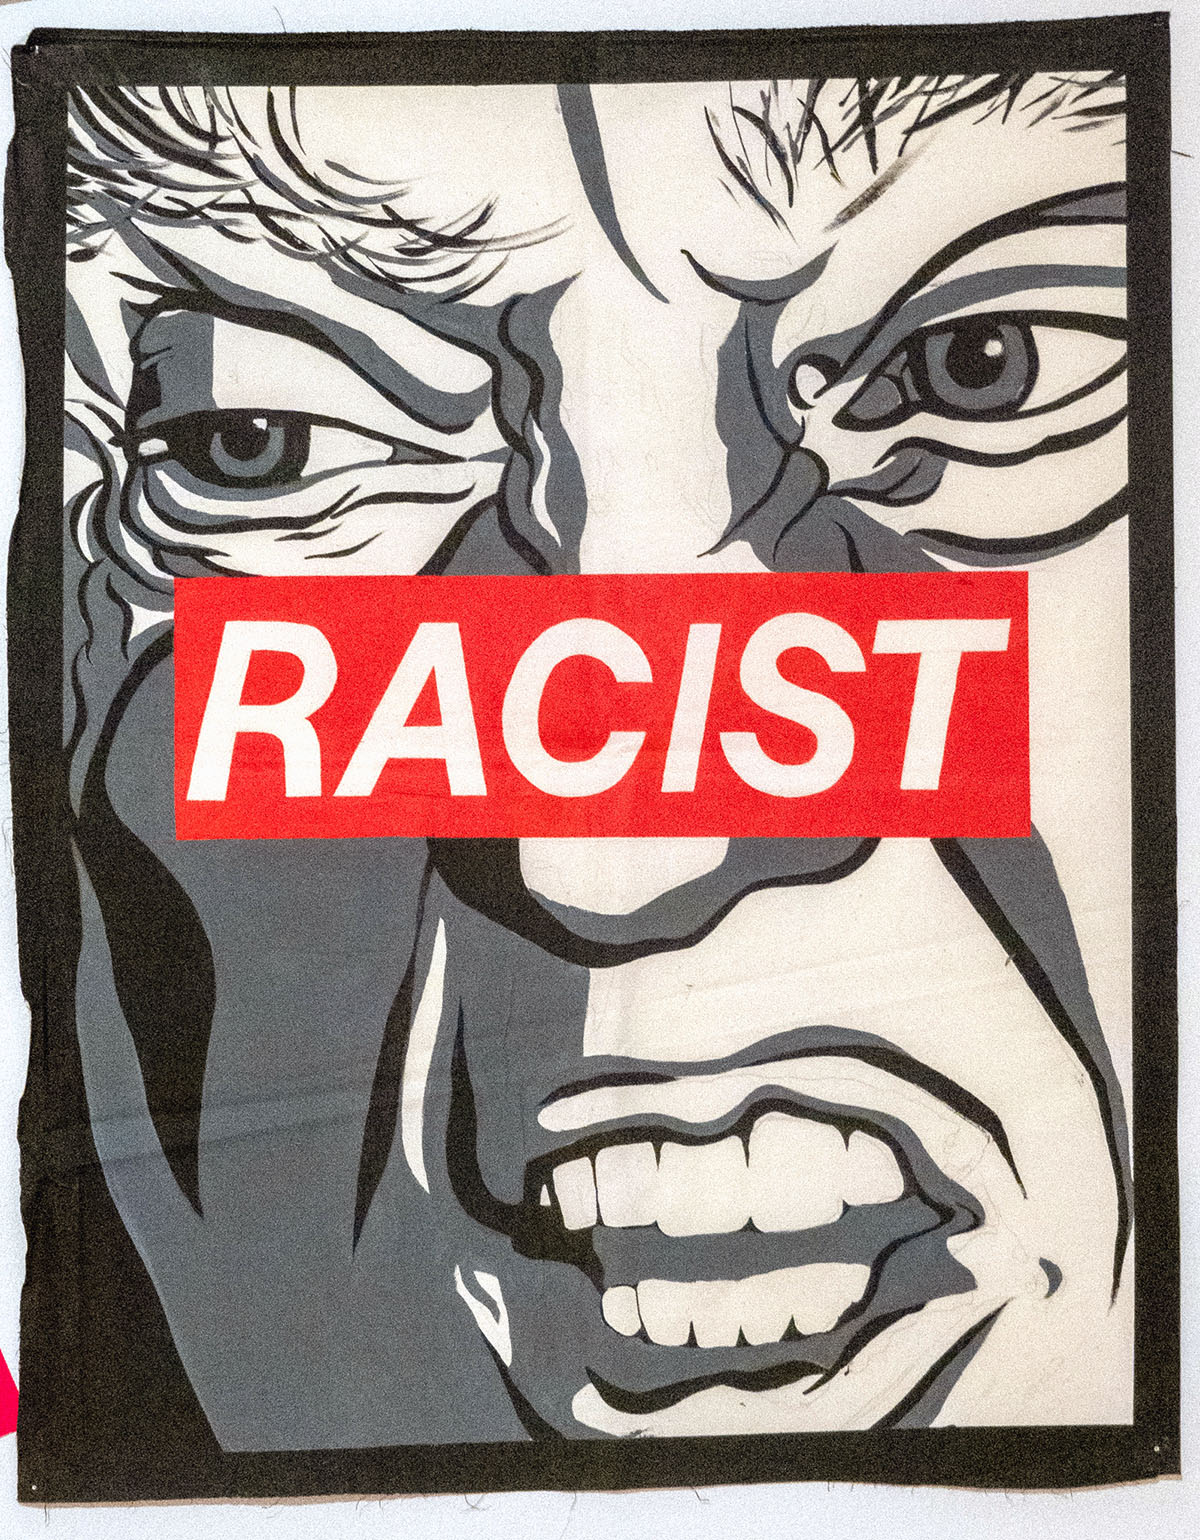 Racist portrait of Trump in the style of Barbara Kruger